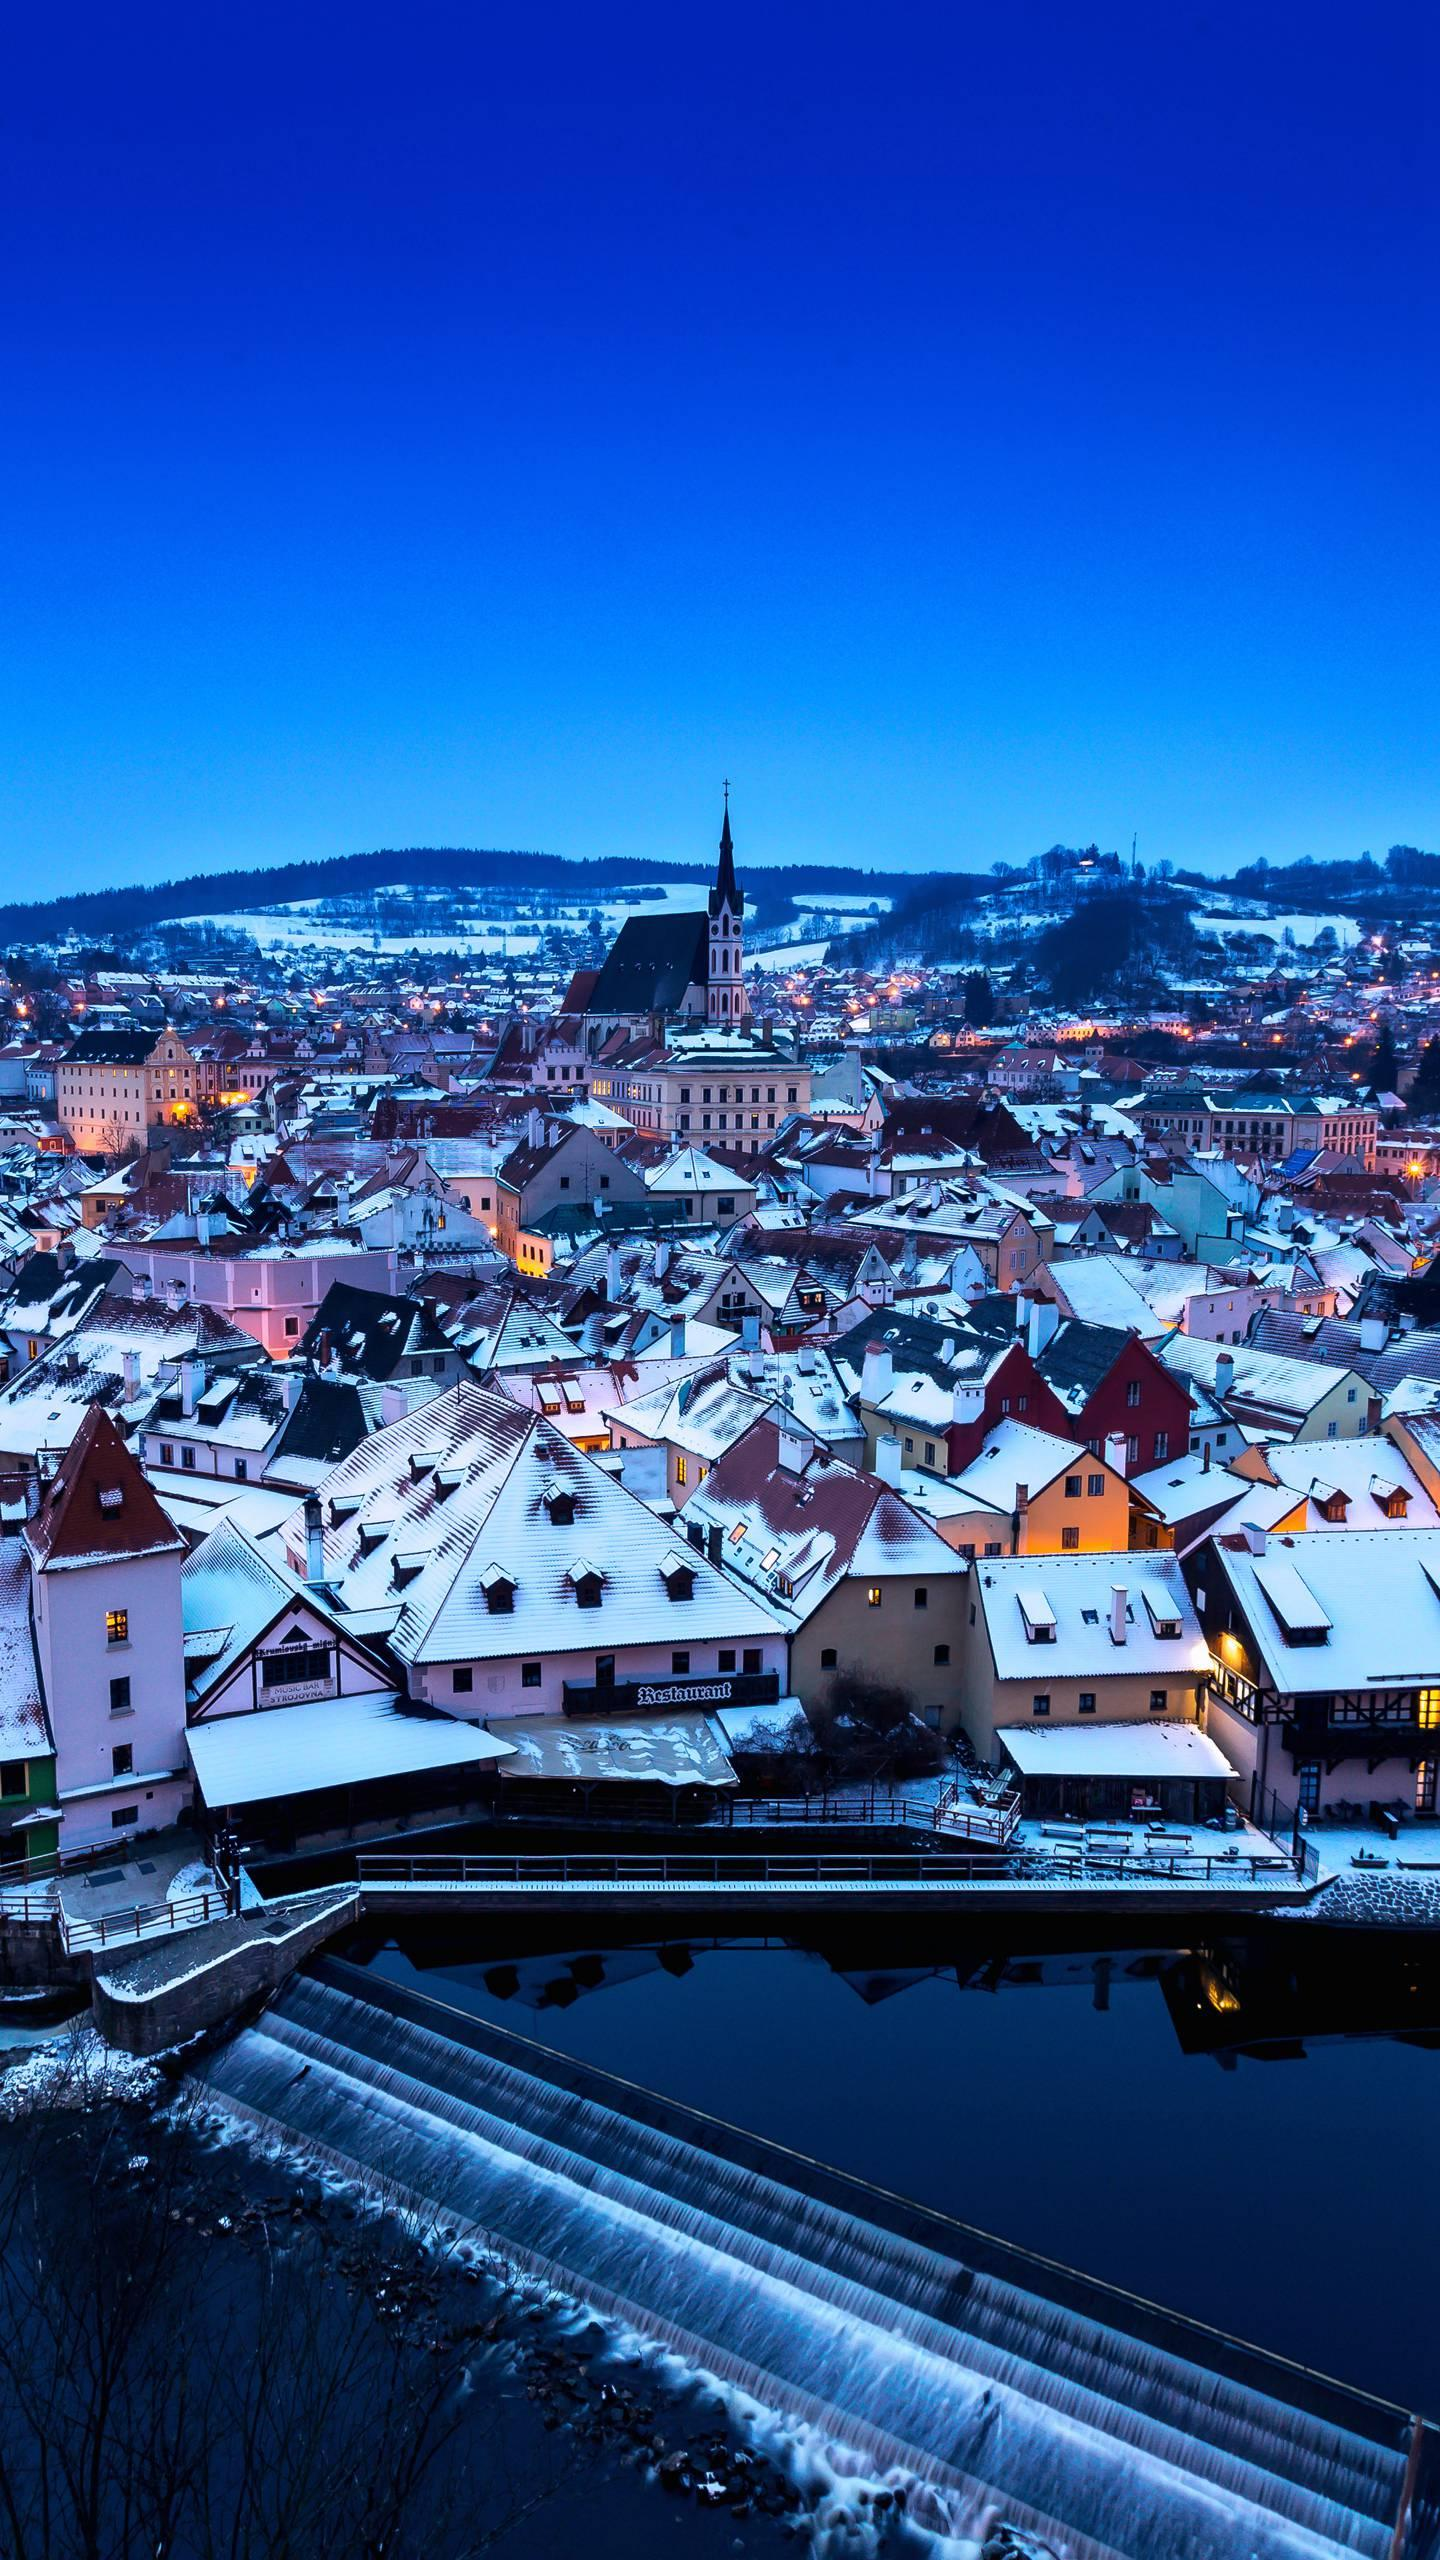 Winter in the European town. The winter of these 8 European towns is a veritable fairy tale world.